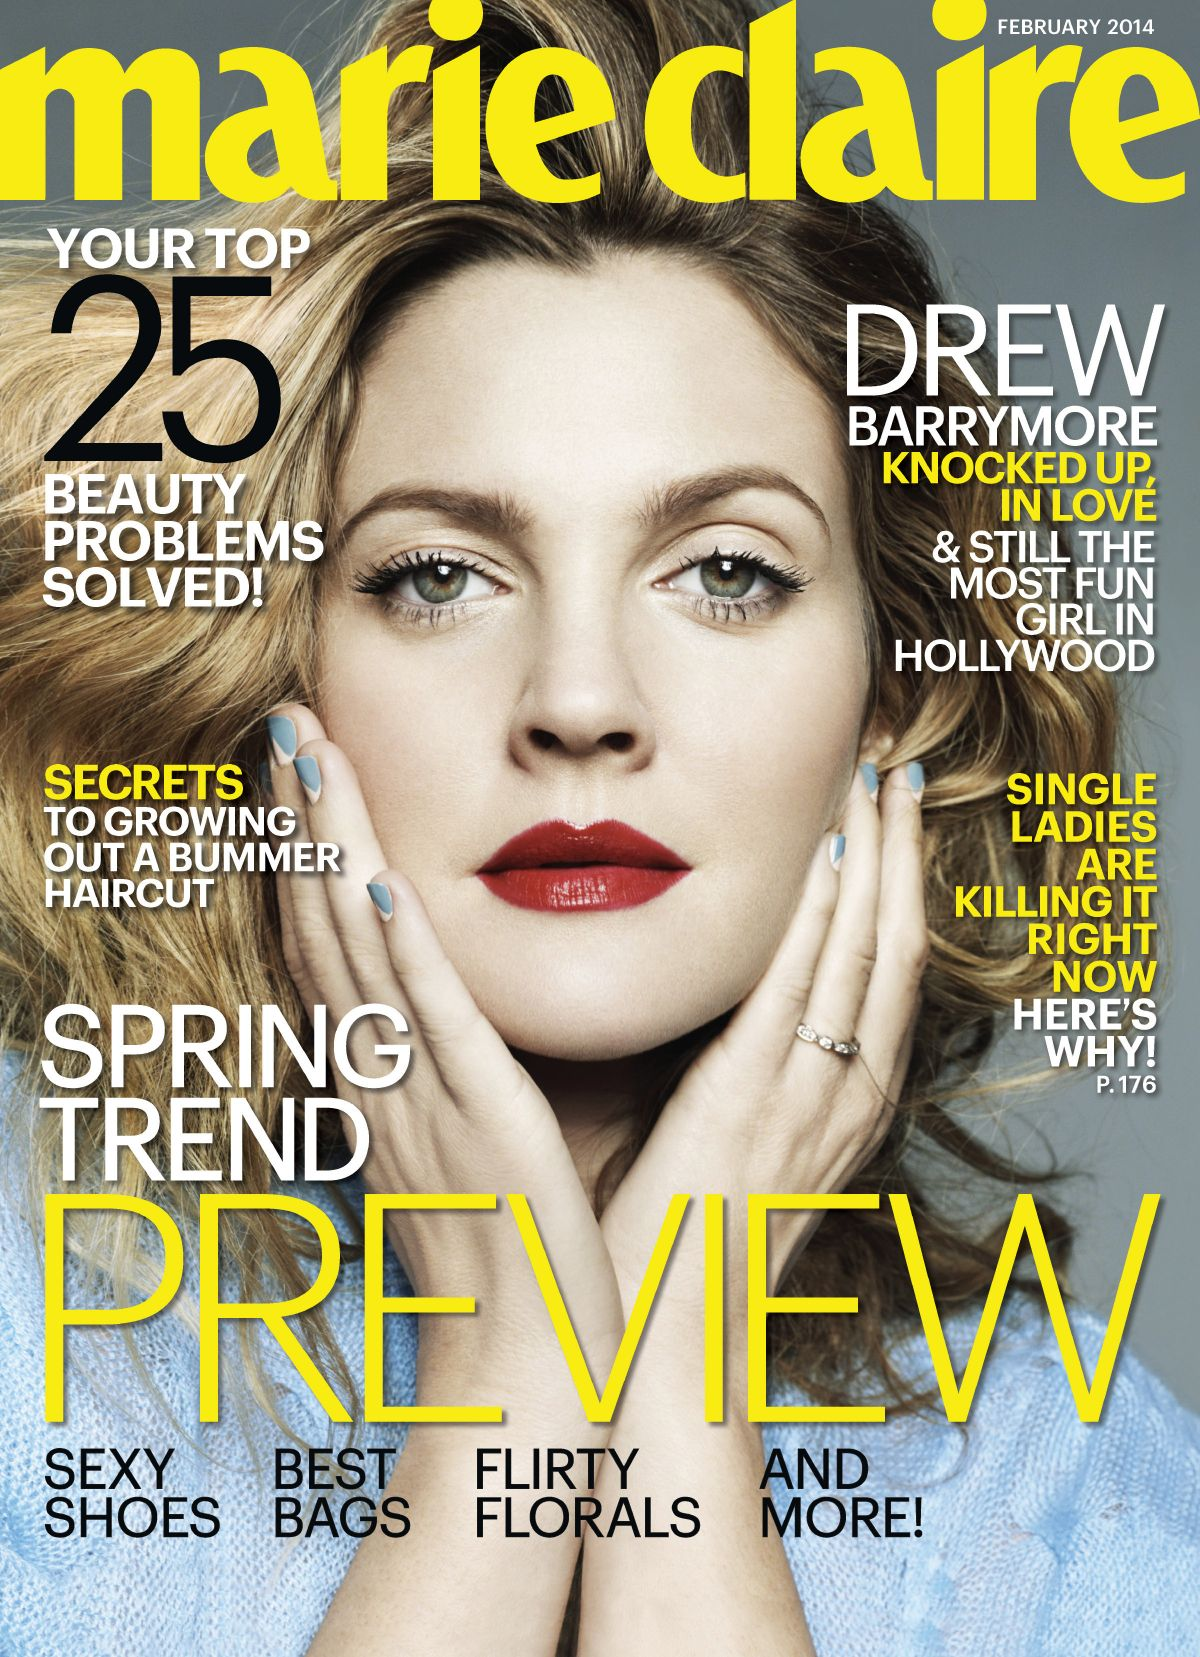 DREW BARRYMORE on the Cover of Marie Claire Magazine, February 2014